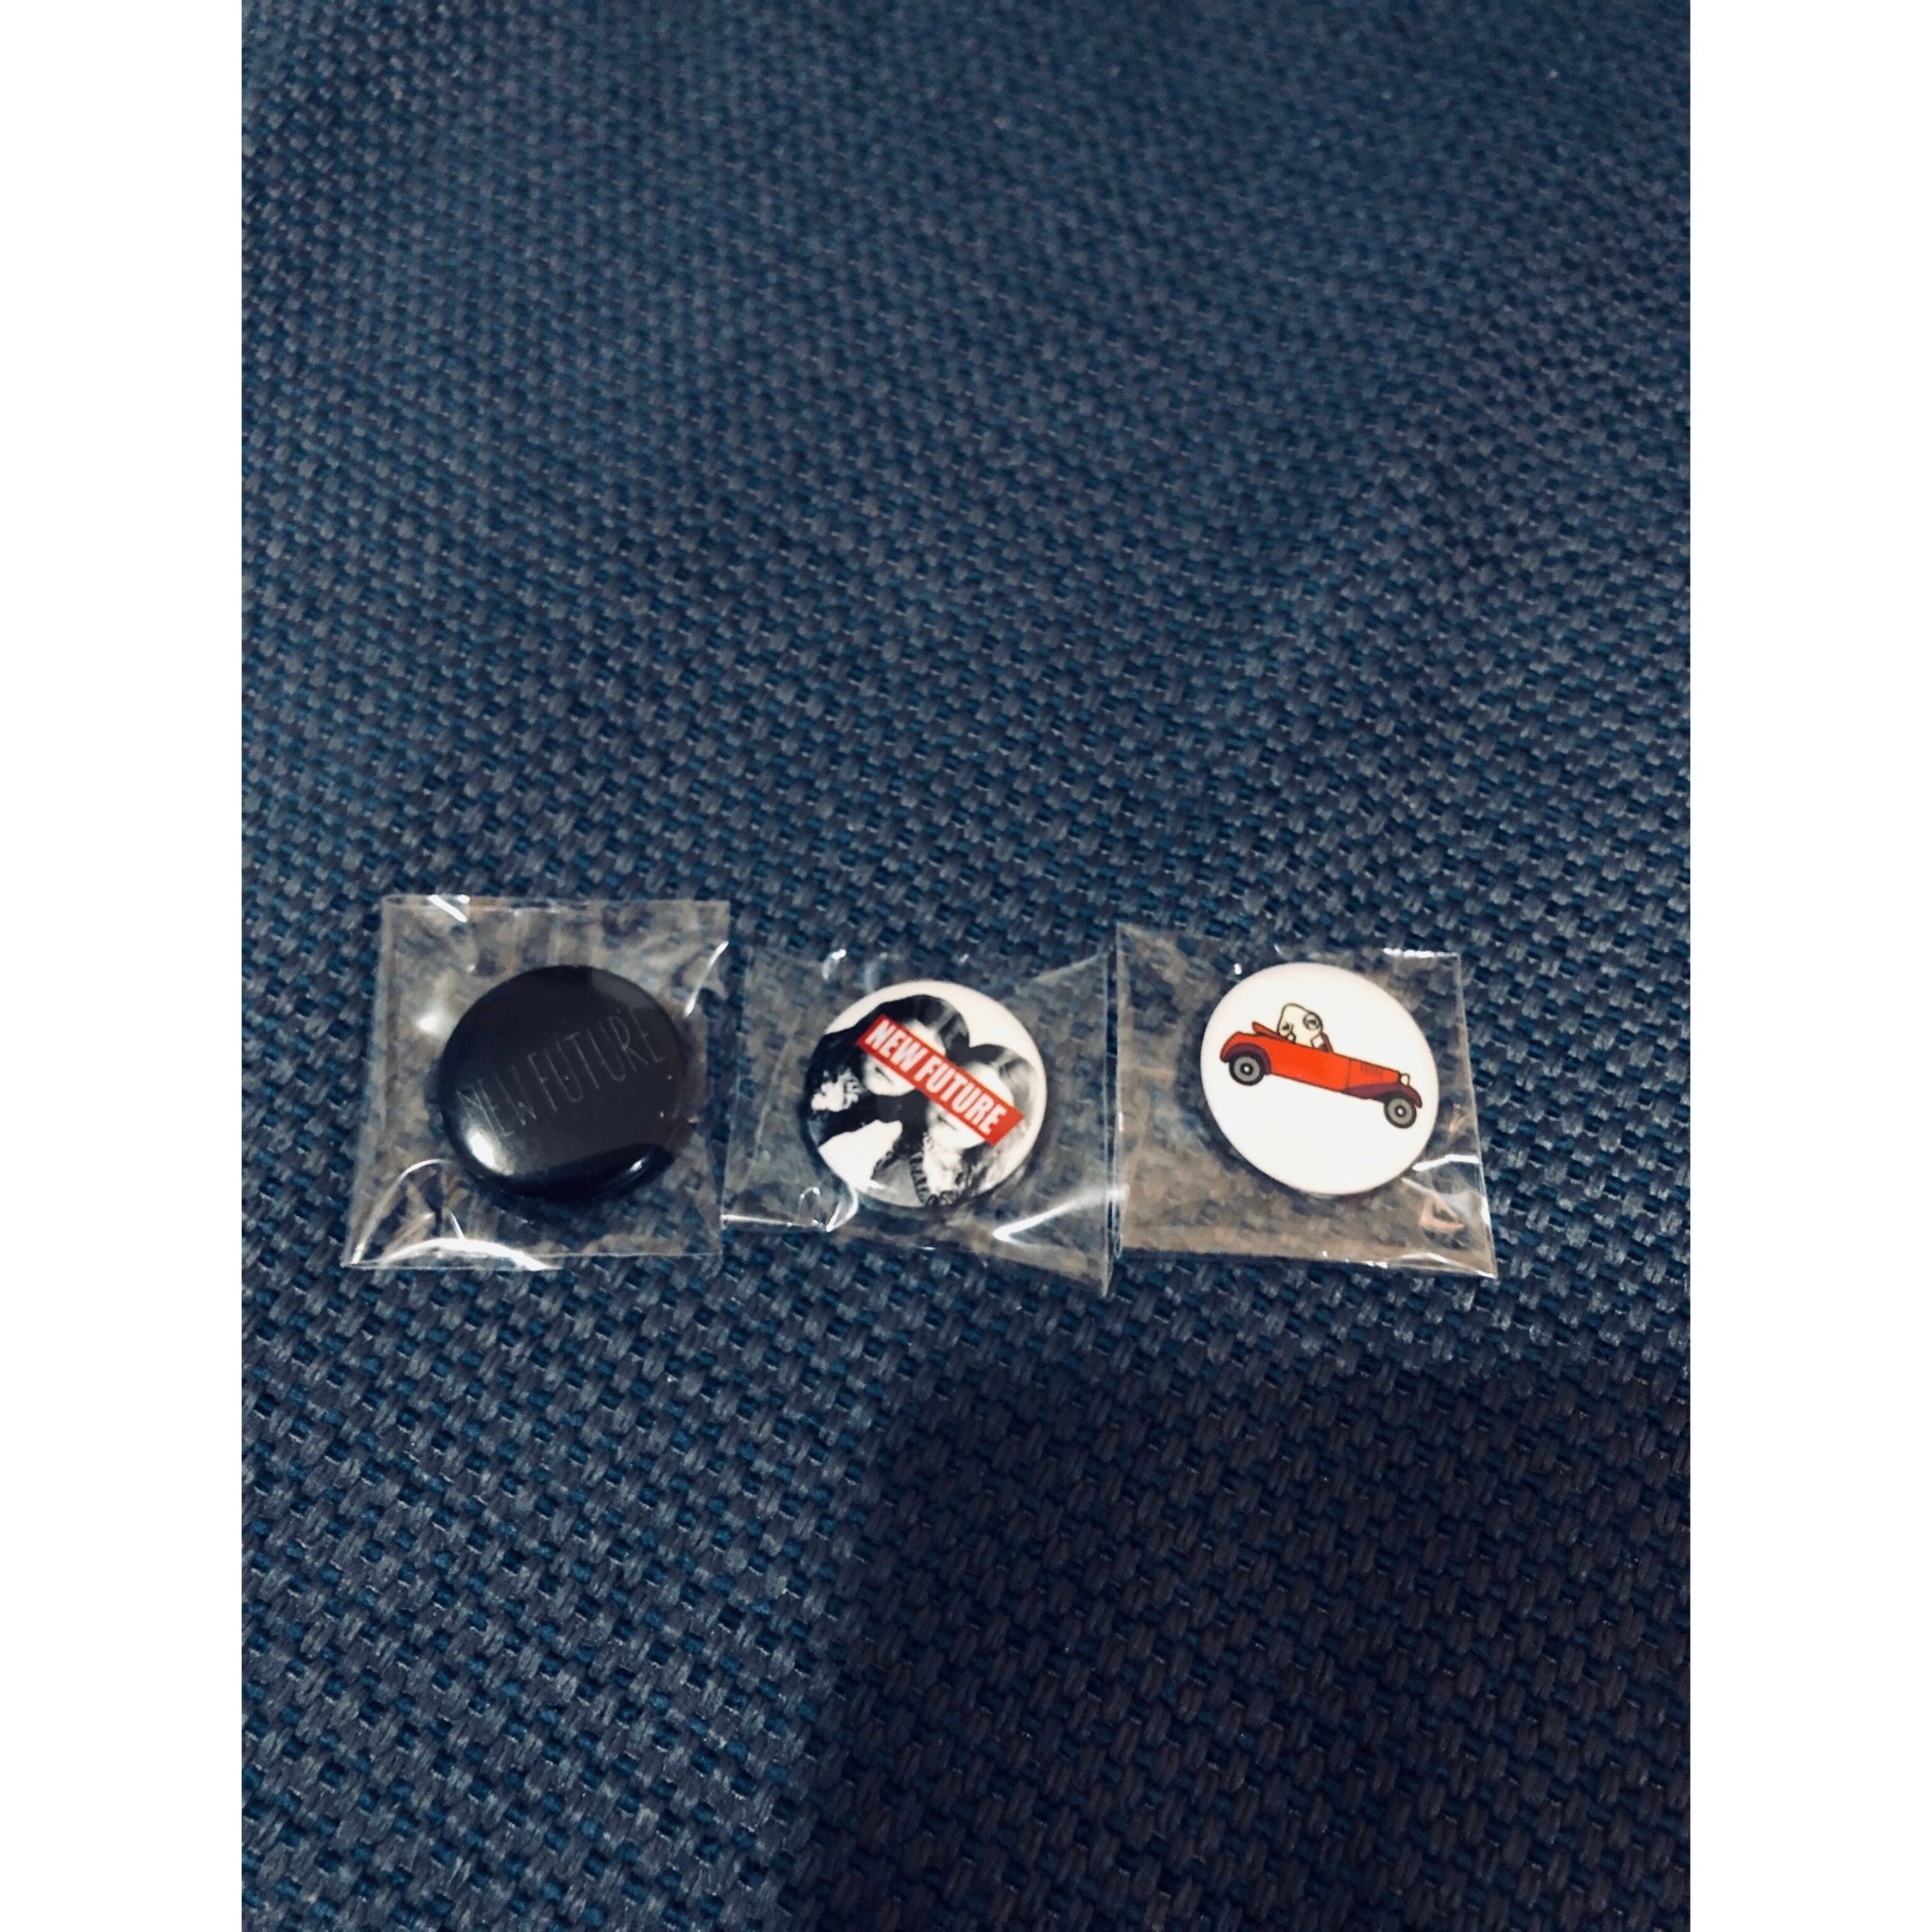 Undercover New Future 3 Badges Set Limited Edition